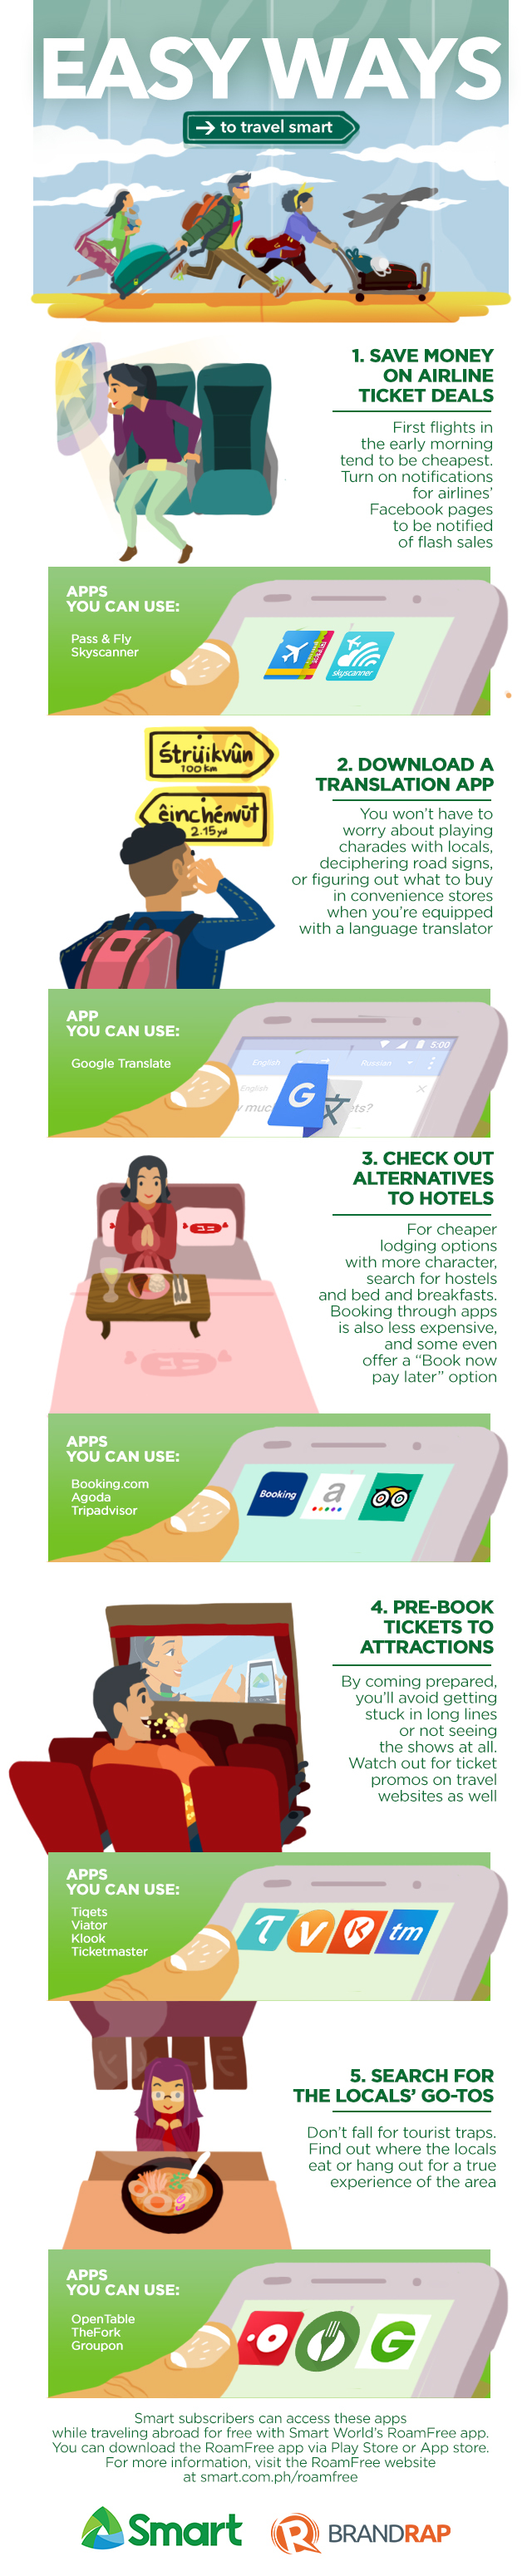 Apps for Traveling Smart and Great Holidaying - Infographic